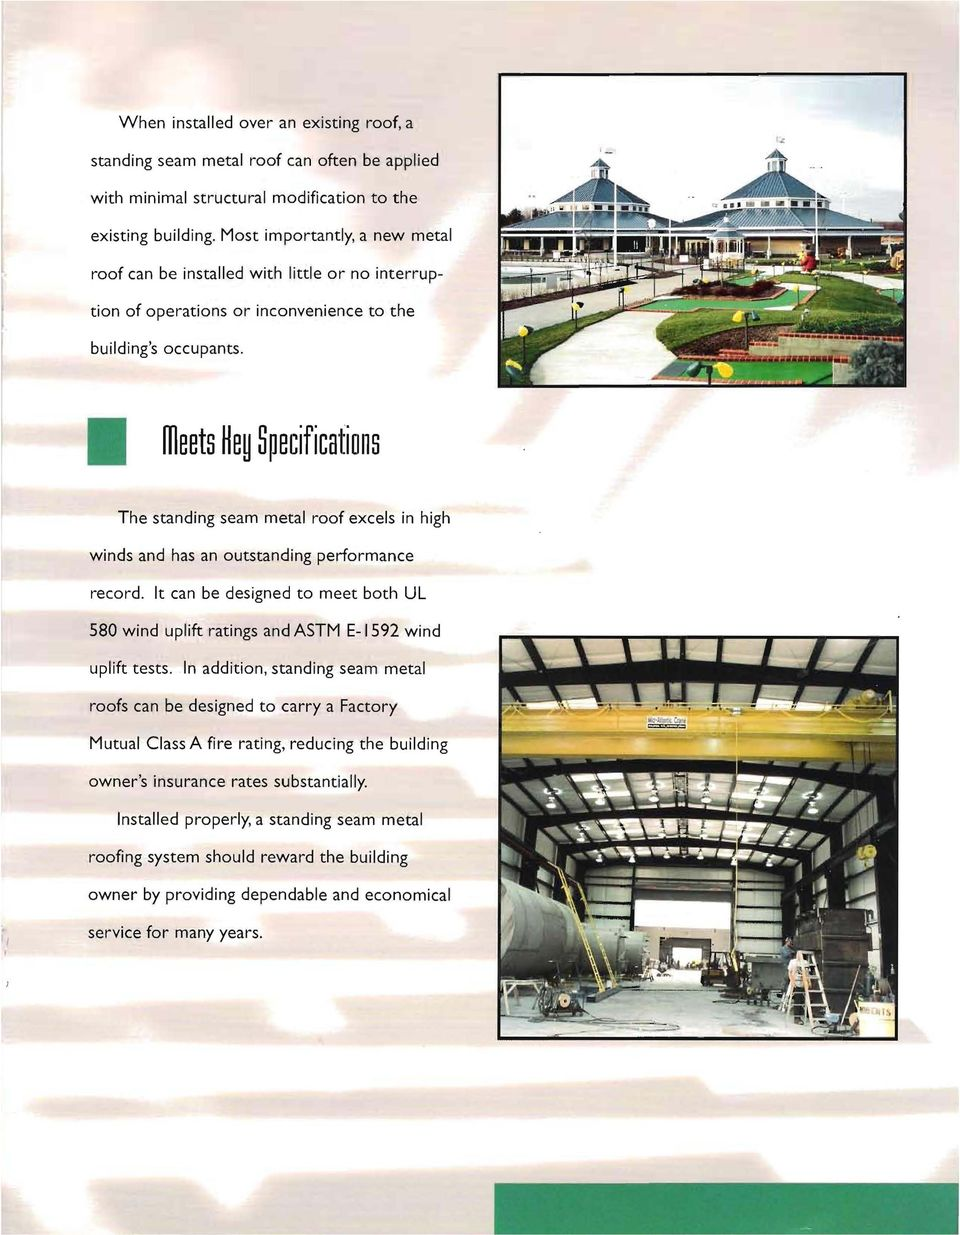 meets Hey S~ecific8tions The standing seam metal roof excels in high winds and has an outstanding performance record.